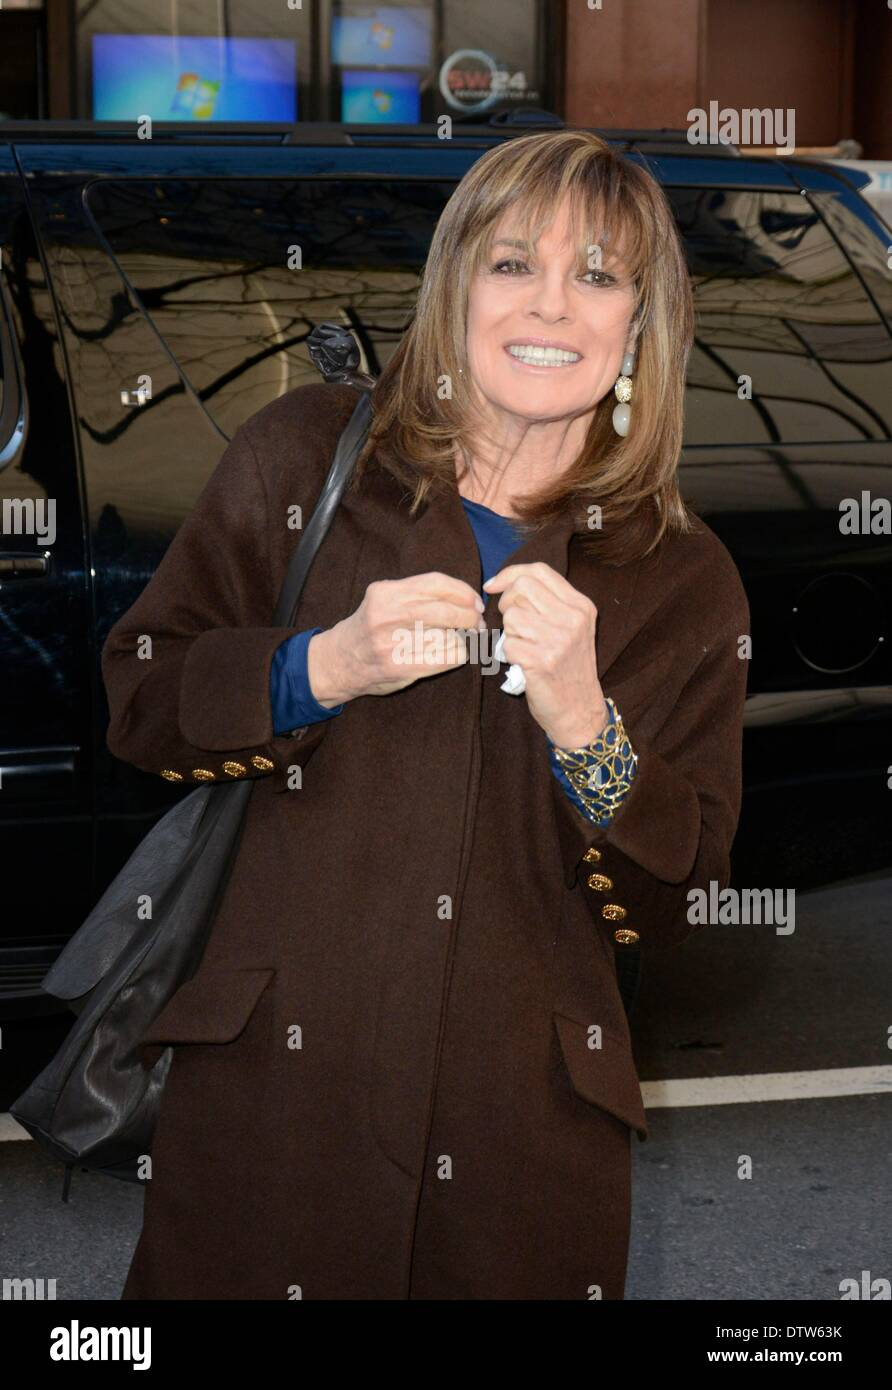 Linda Gray on the talk